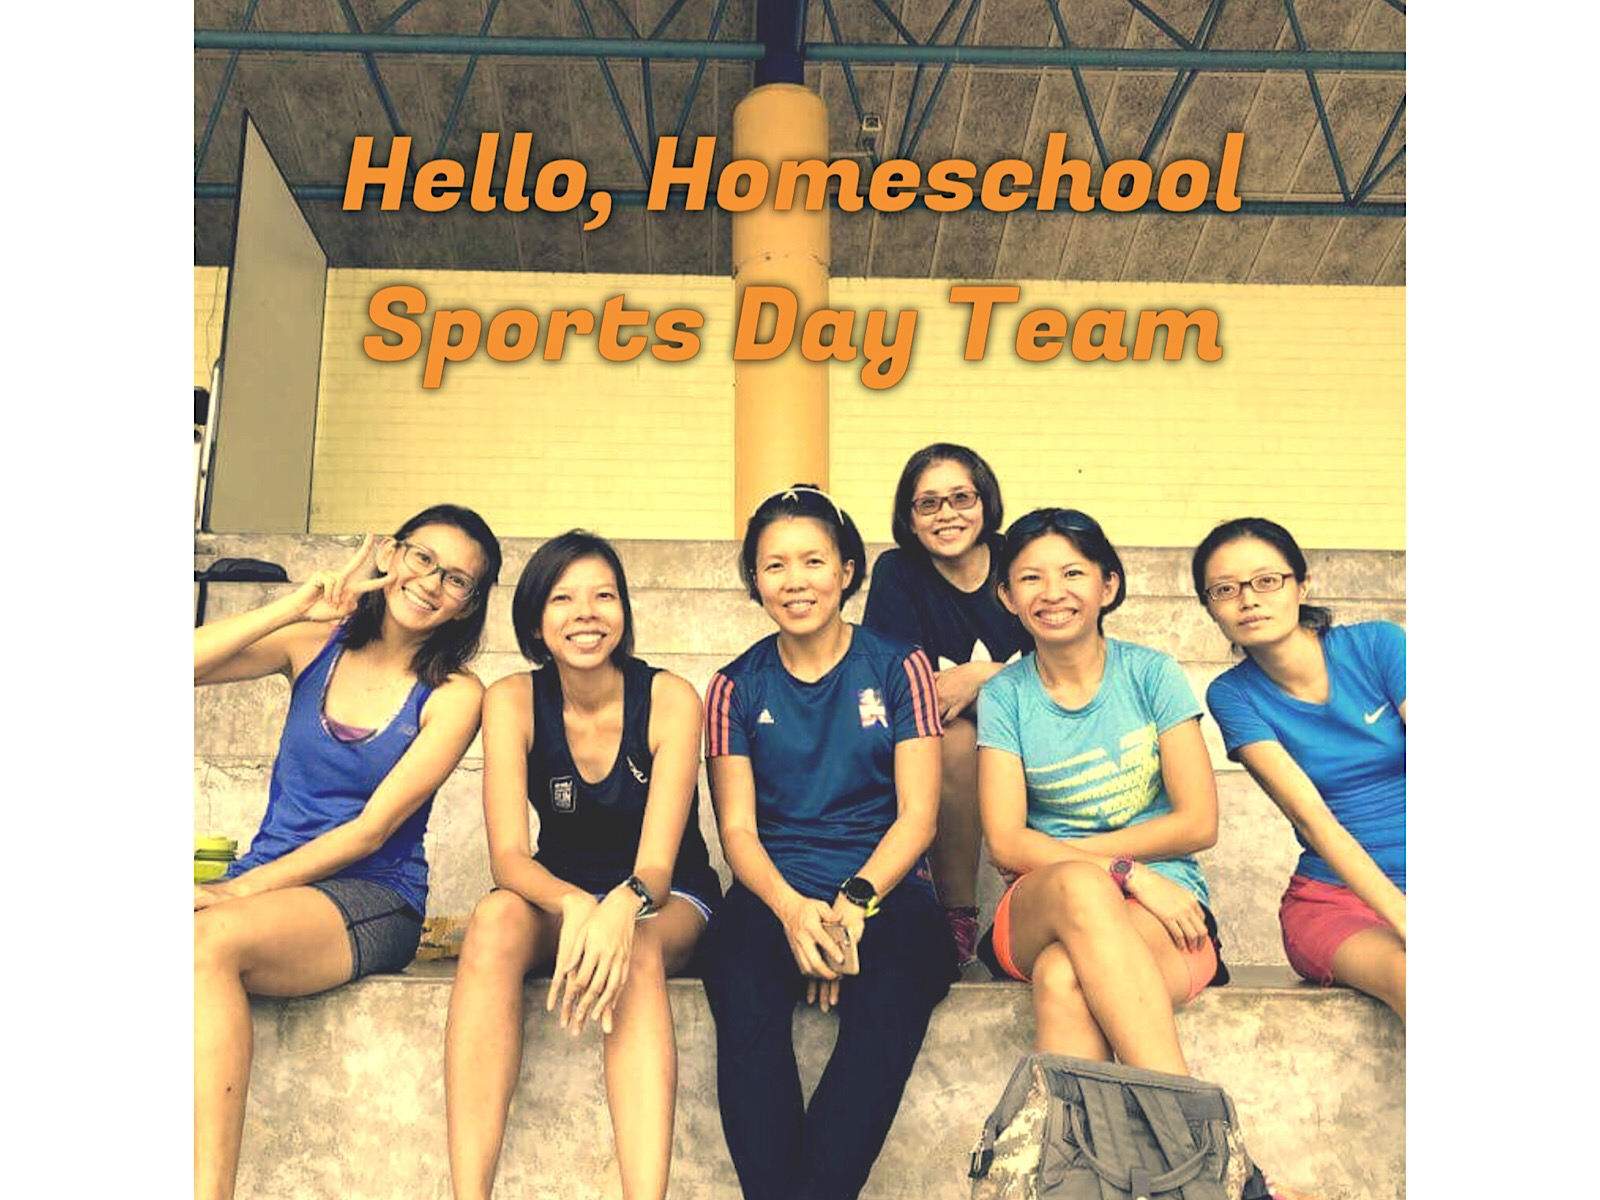 Meet the Homeschool Sports Day Team!